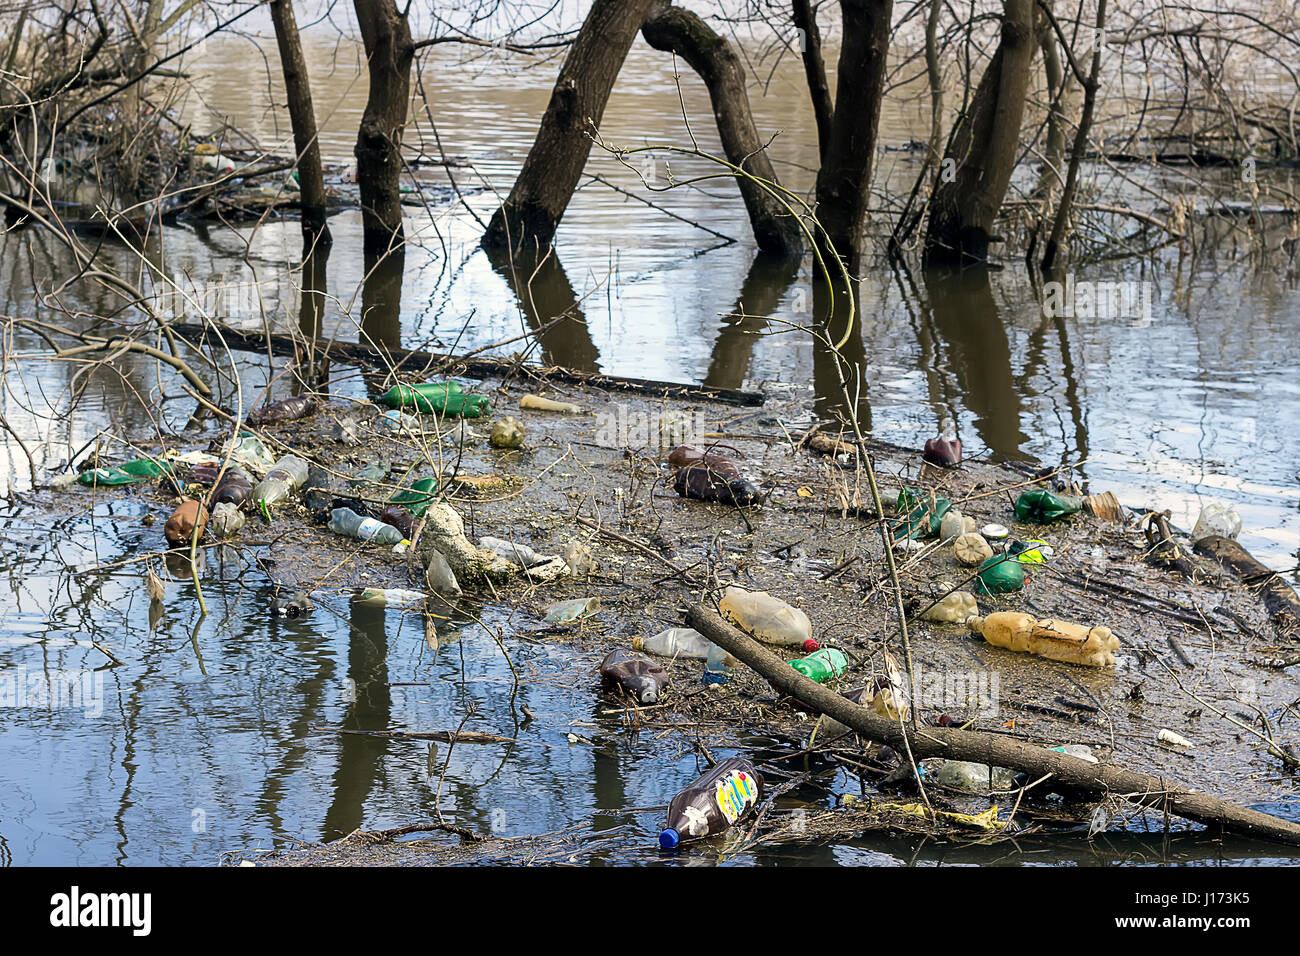 Spring flood leads to an ecological disaster - Stock Image